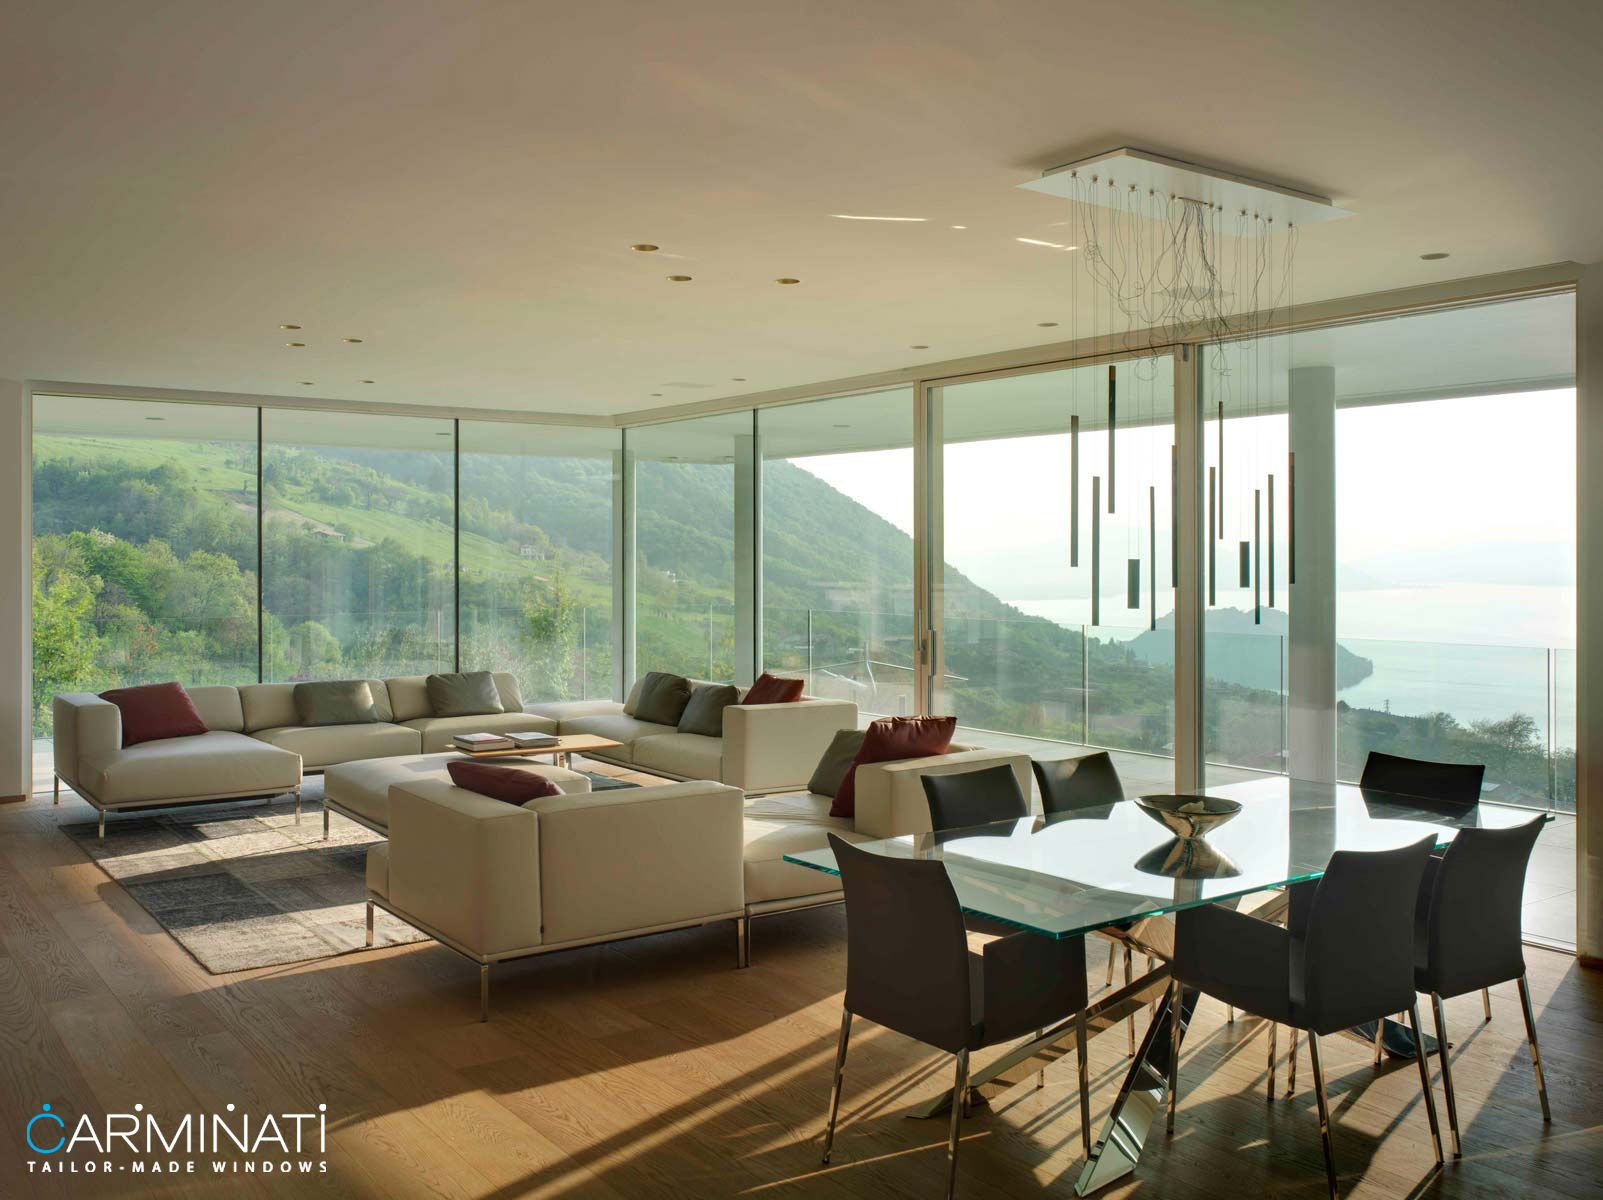 A villa is opened to the world through a minimal frame lift slide door system by Carminati